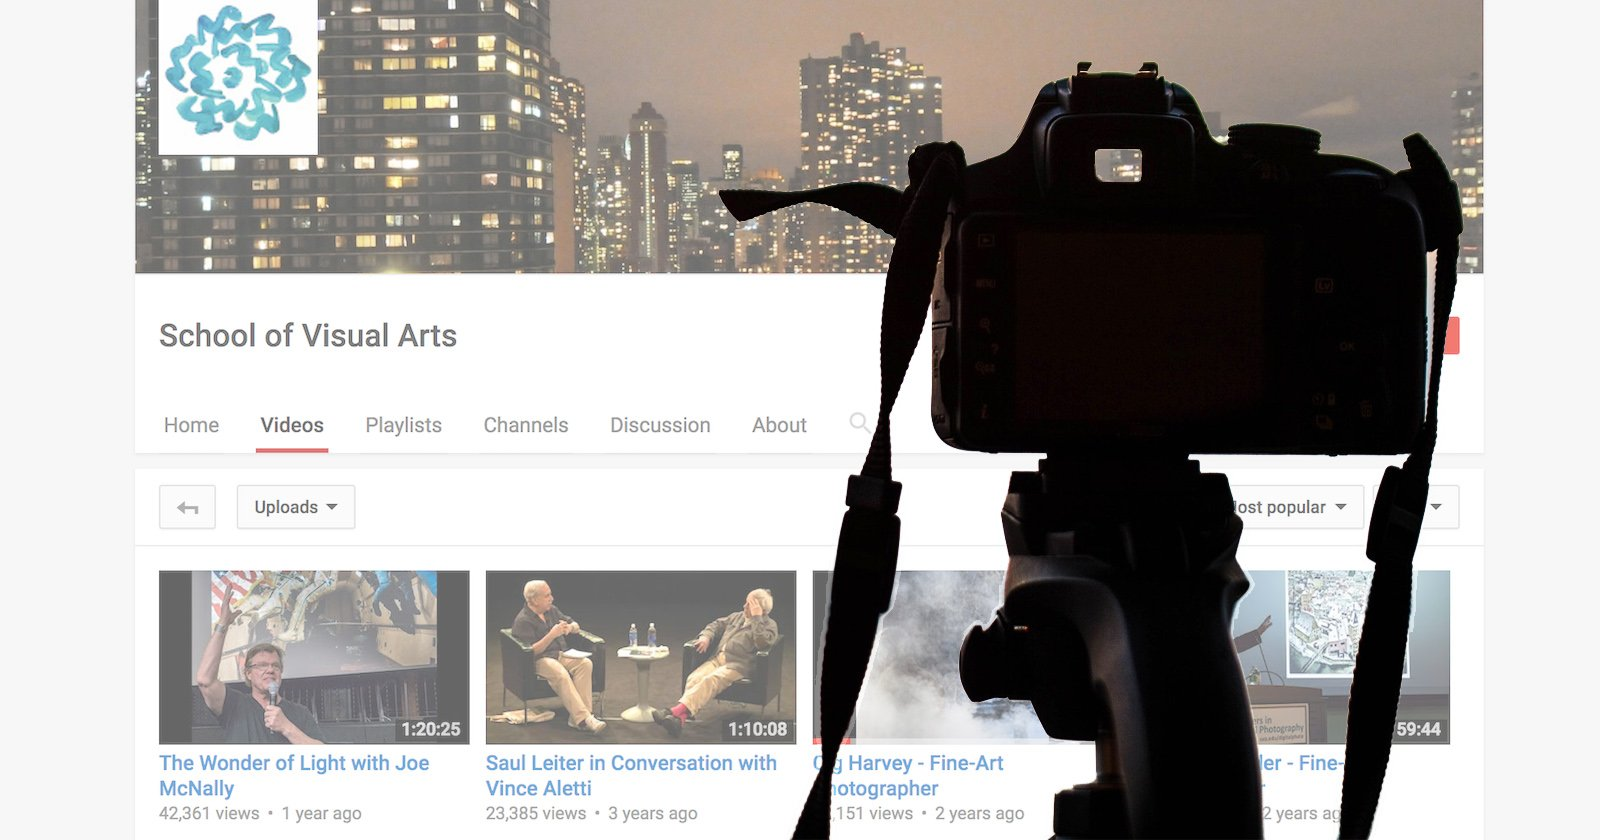 School of Visual Arts' YouTube Channel is Full of Amazing Photo Lectures